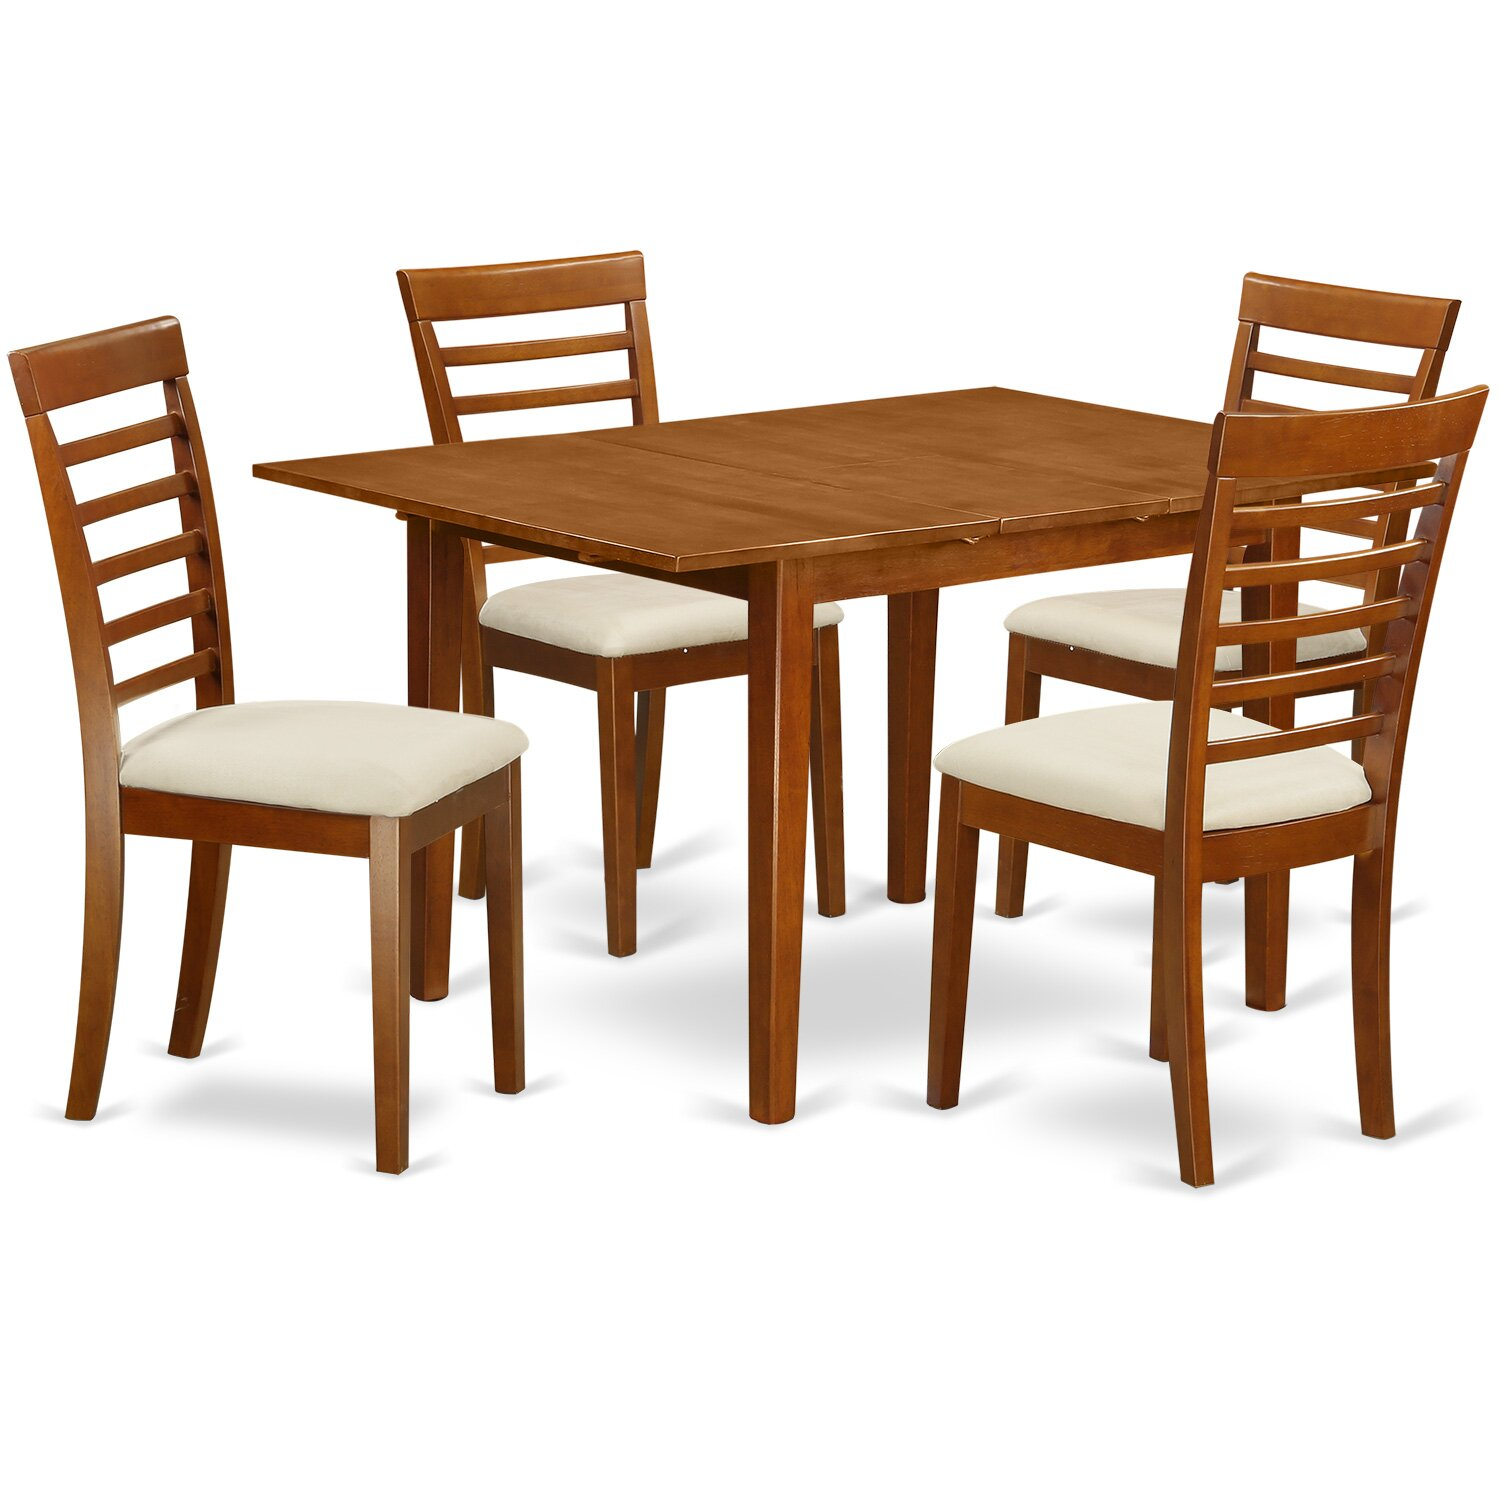 East west milan 5 piece dining set wayfair for Small kitchen table and chairs